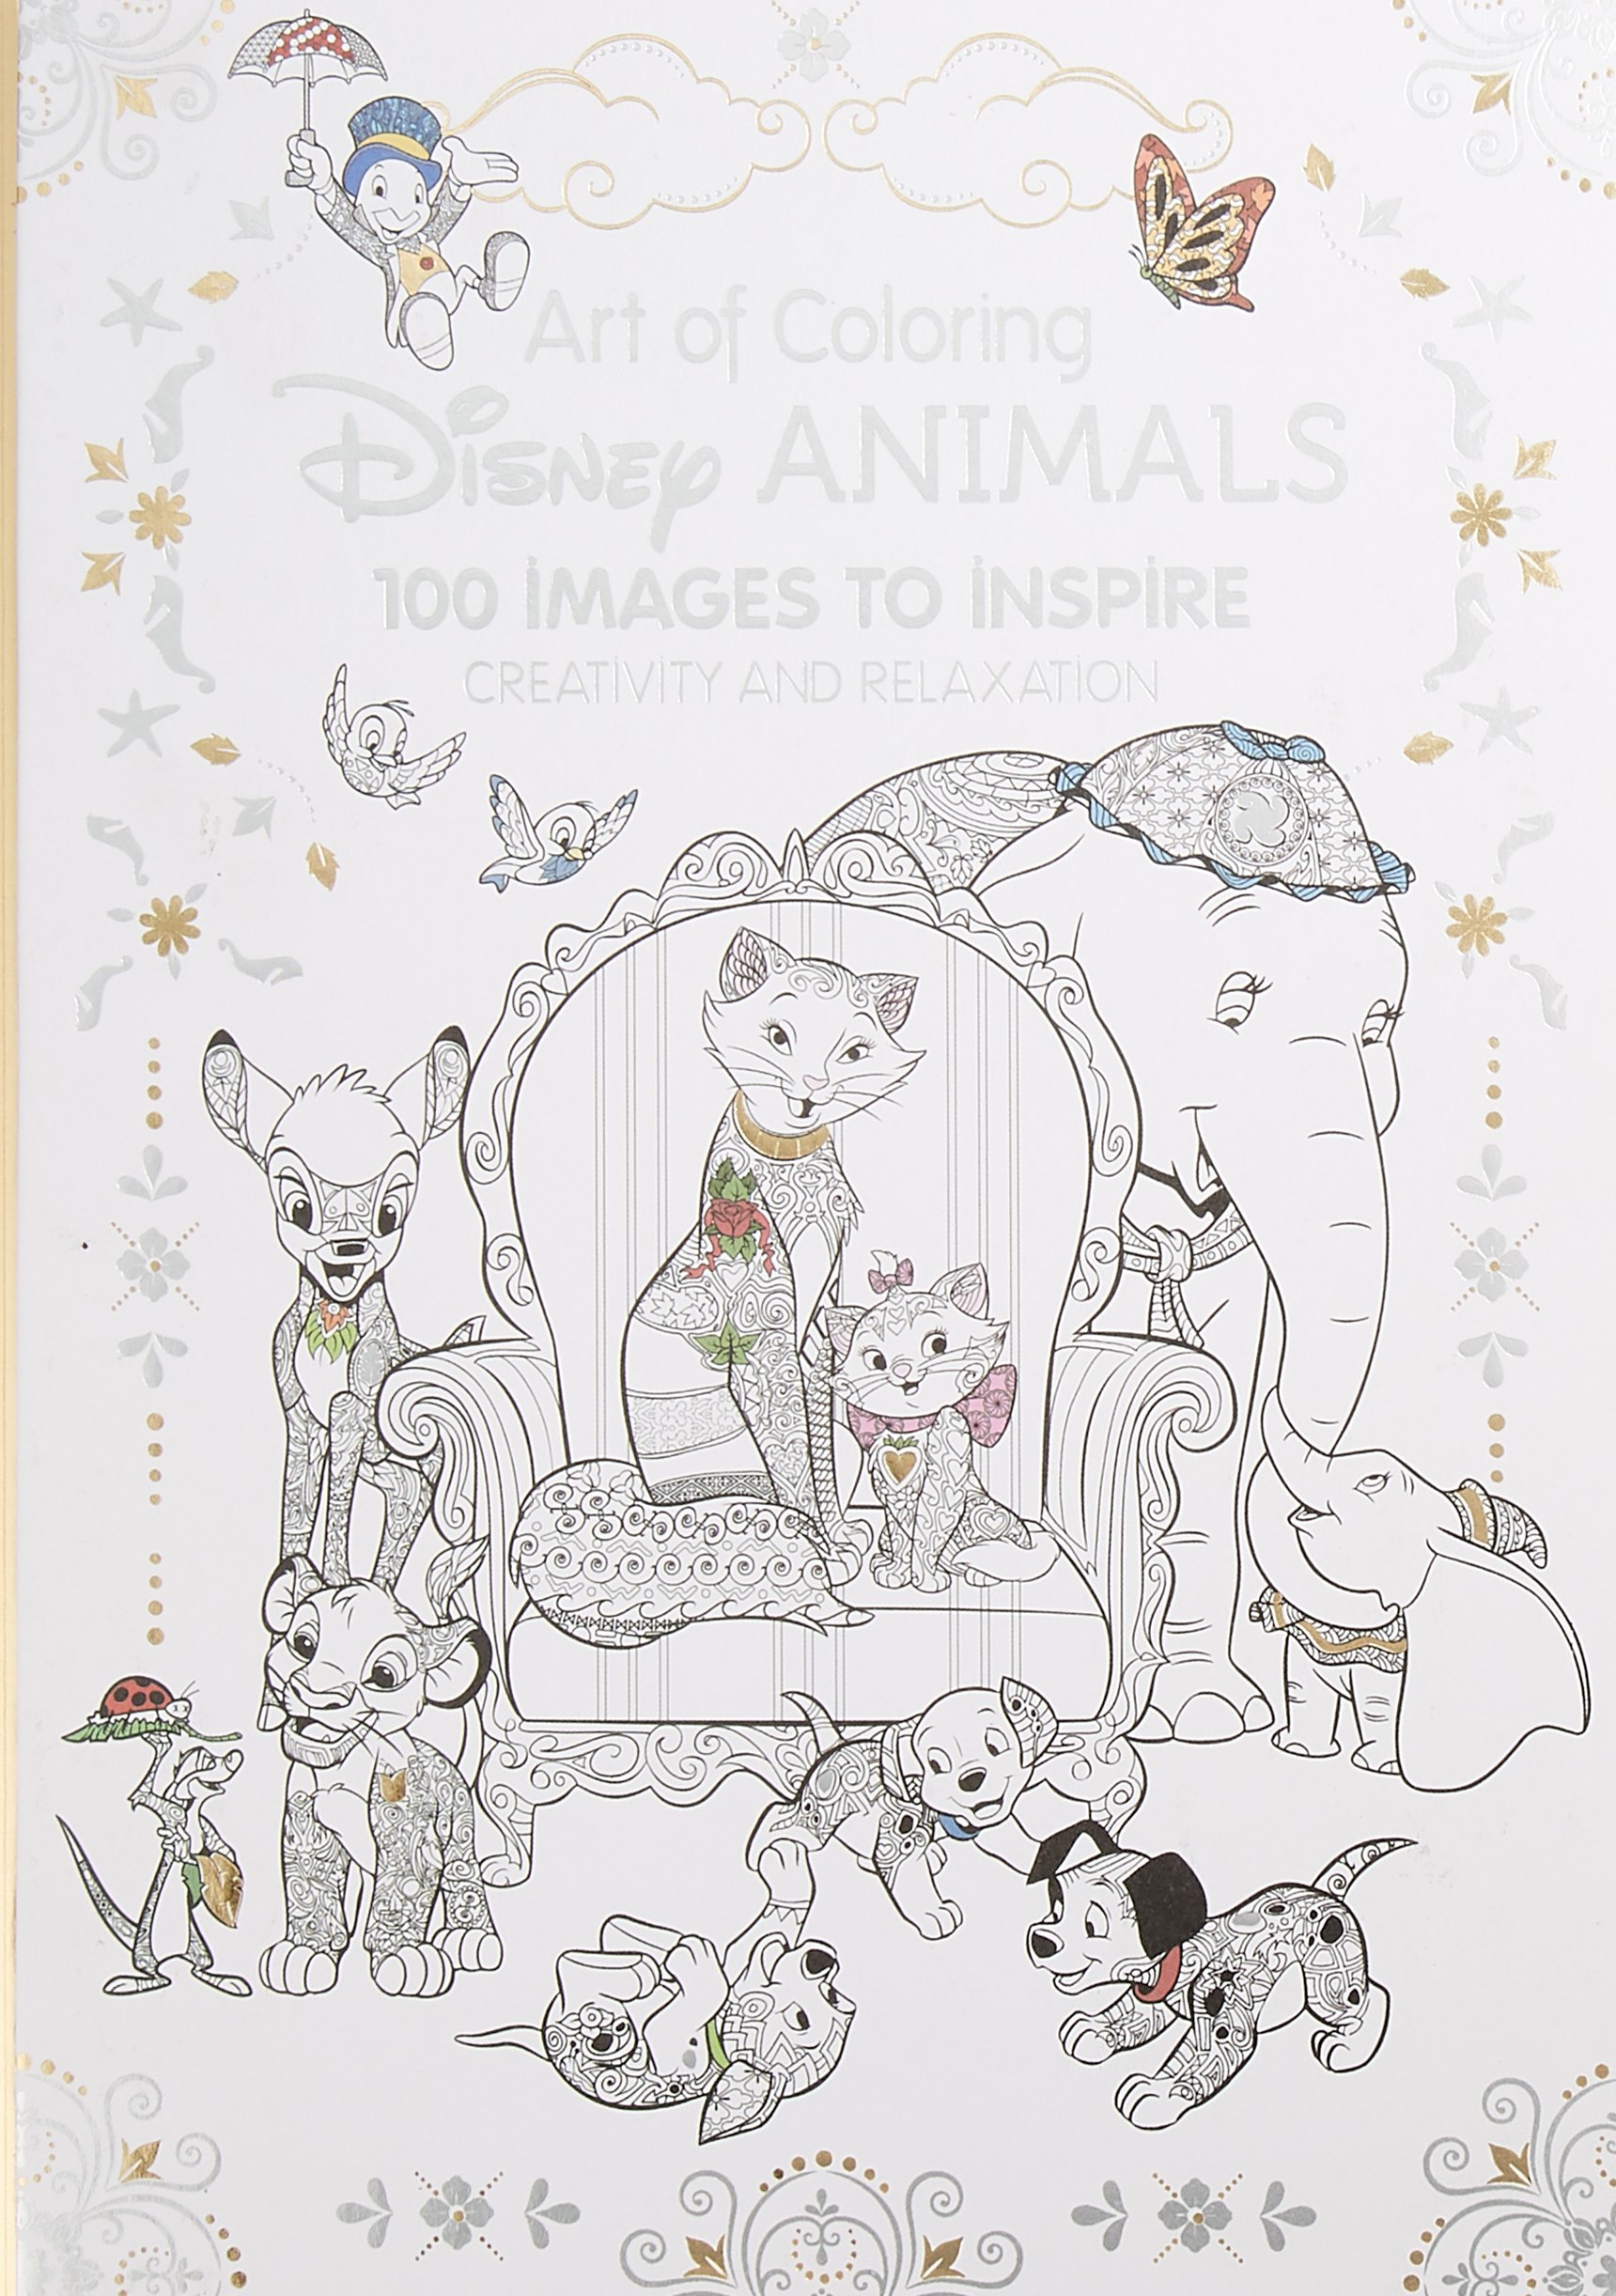 - Art Of Coloring: Disney Animals: 100 Images To Inspire Creativity